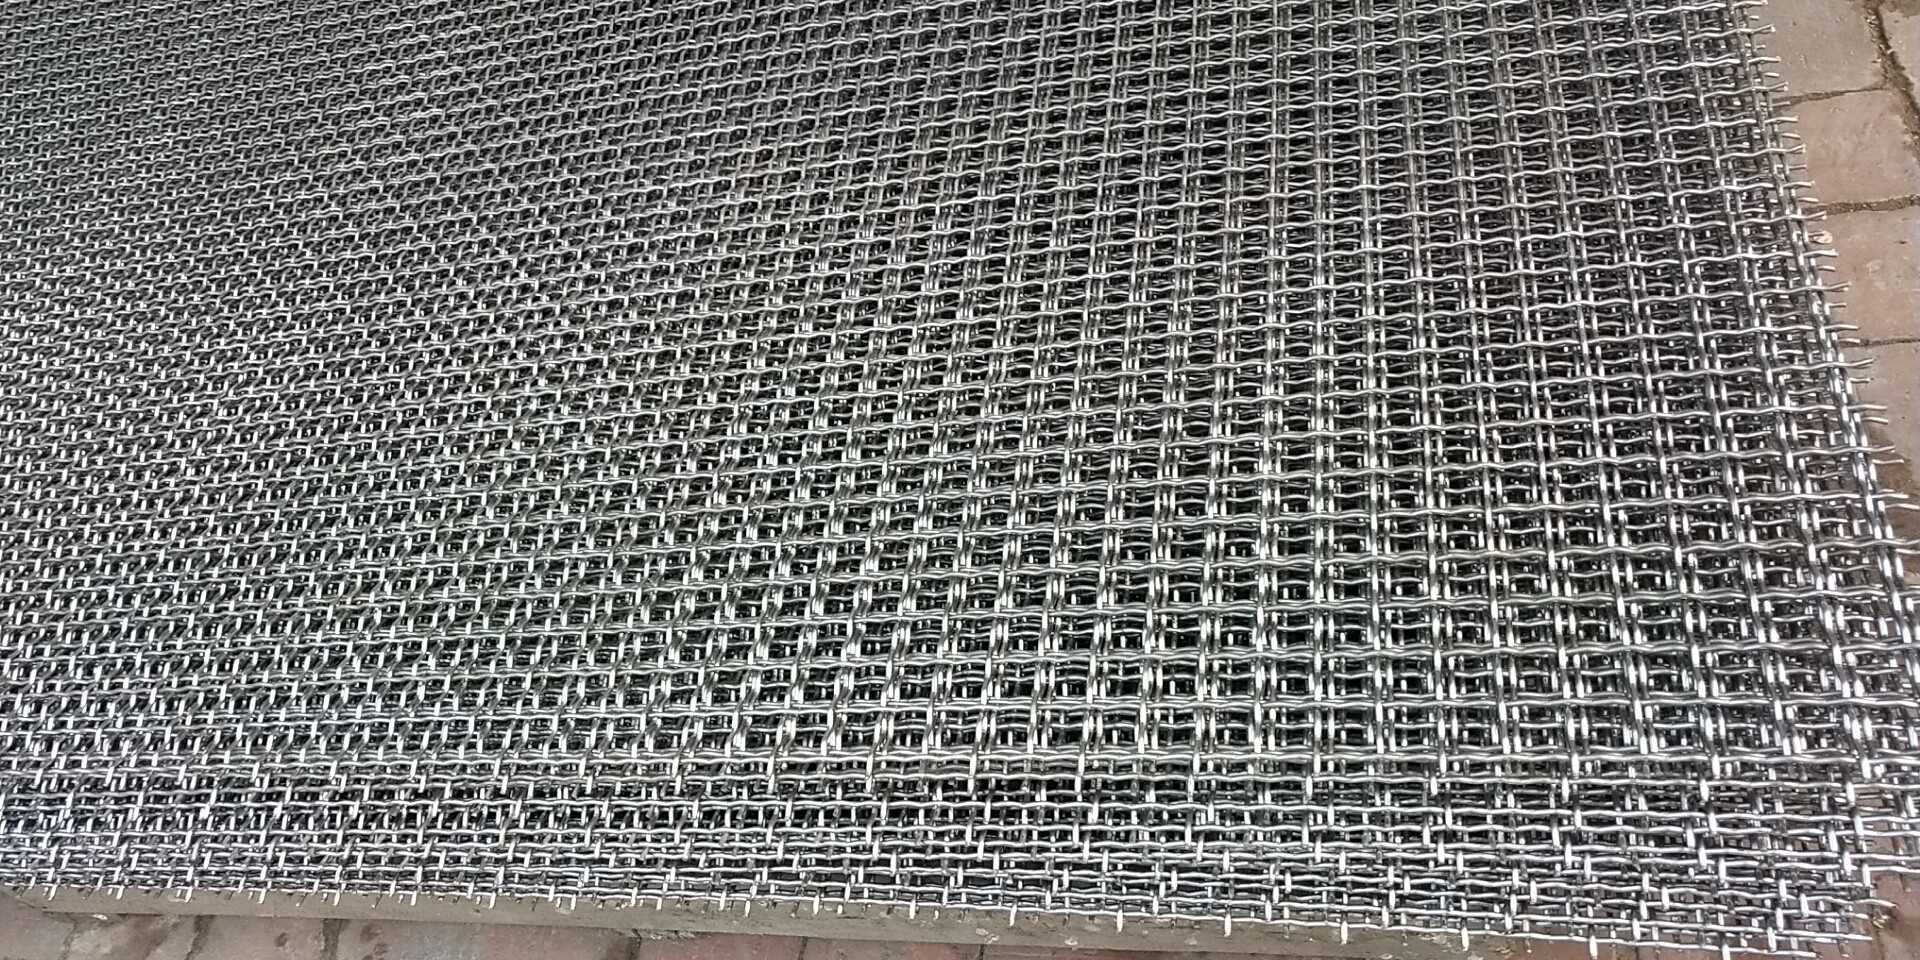 Wire mesh stainless  steel 304 mesh 26 X 26 width 1800mm length 30m